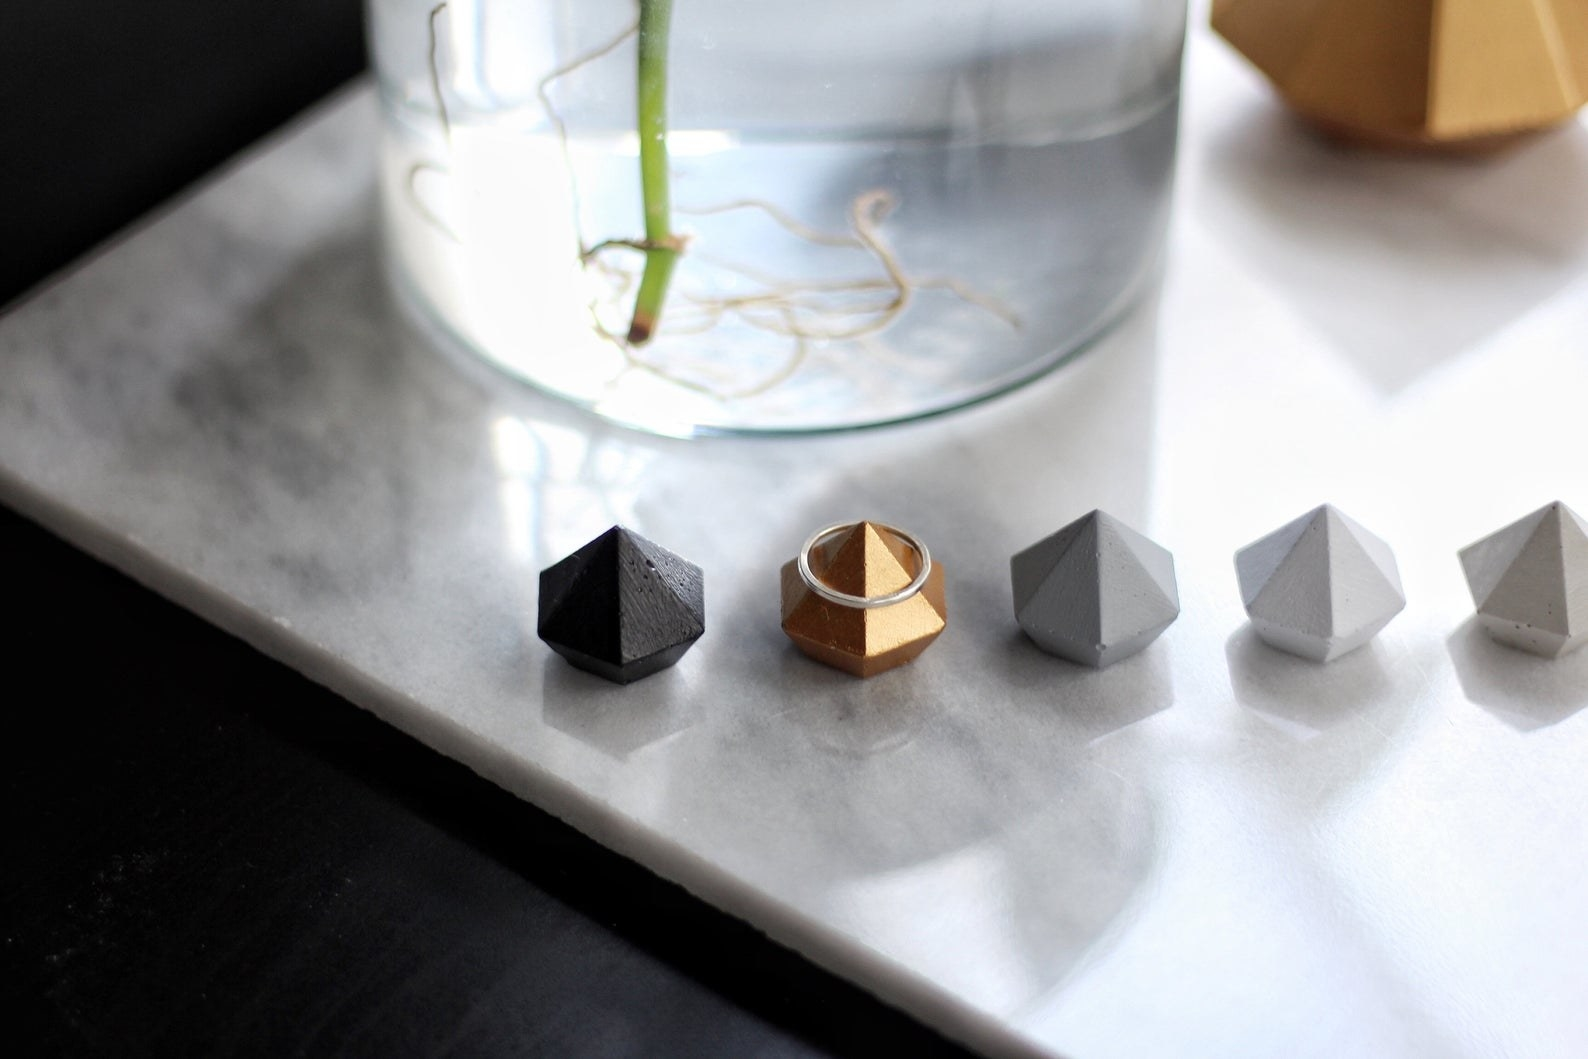 five ring holders with a ring on one of them